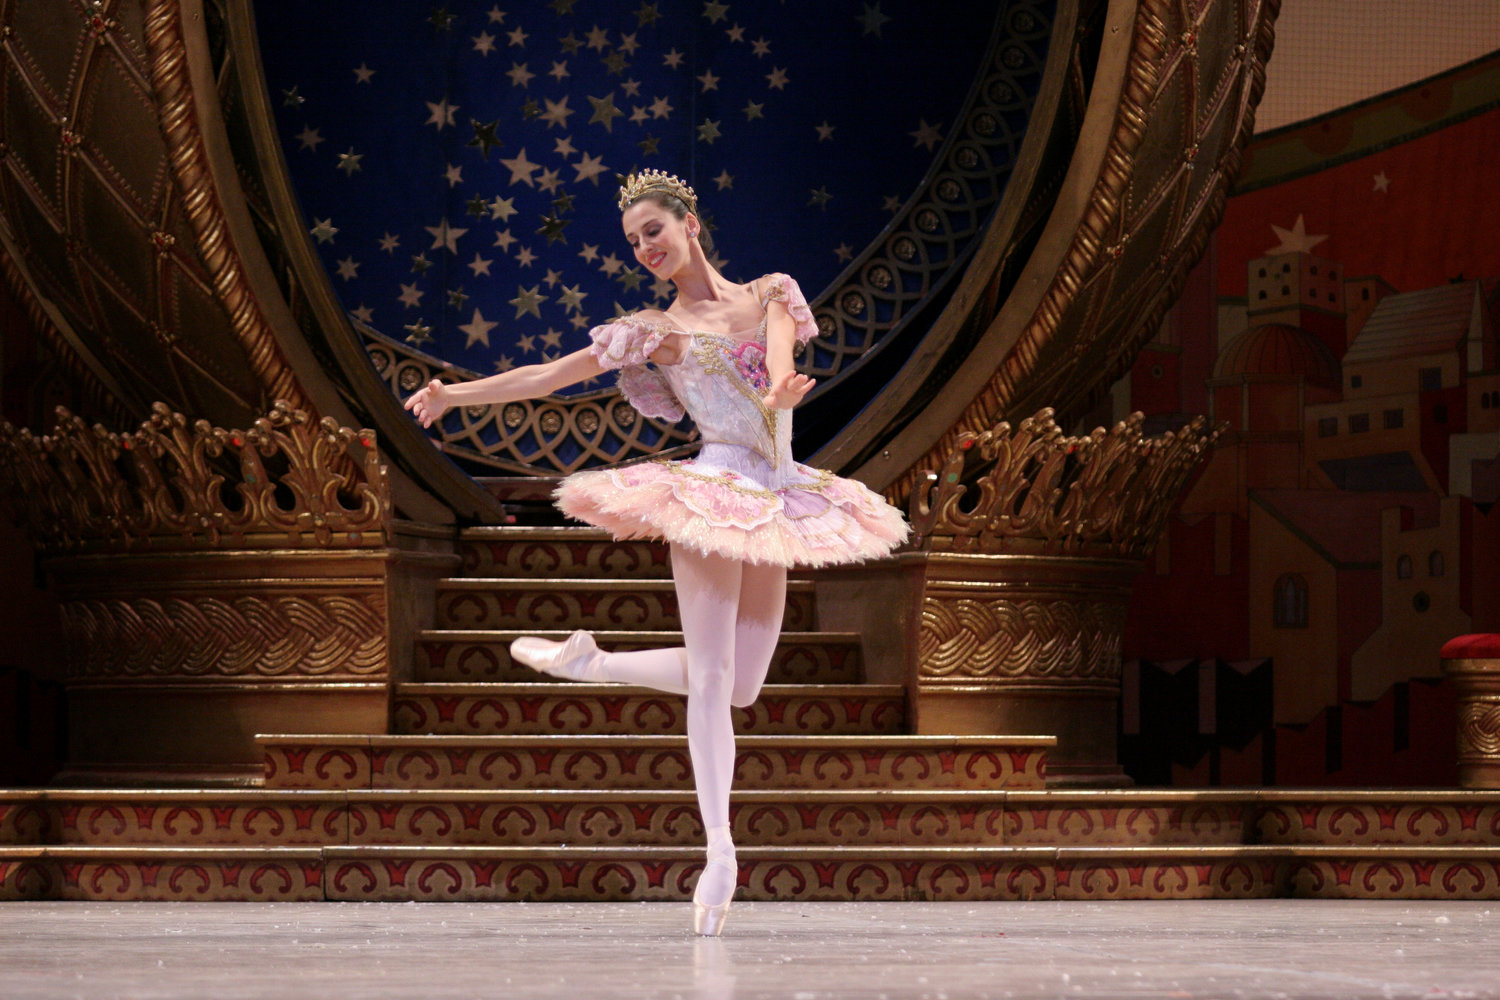 Sonia Rodriguez in The Nutcracker. Photo by Bruce Zinger, courtesy of The National Ballet of Canada